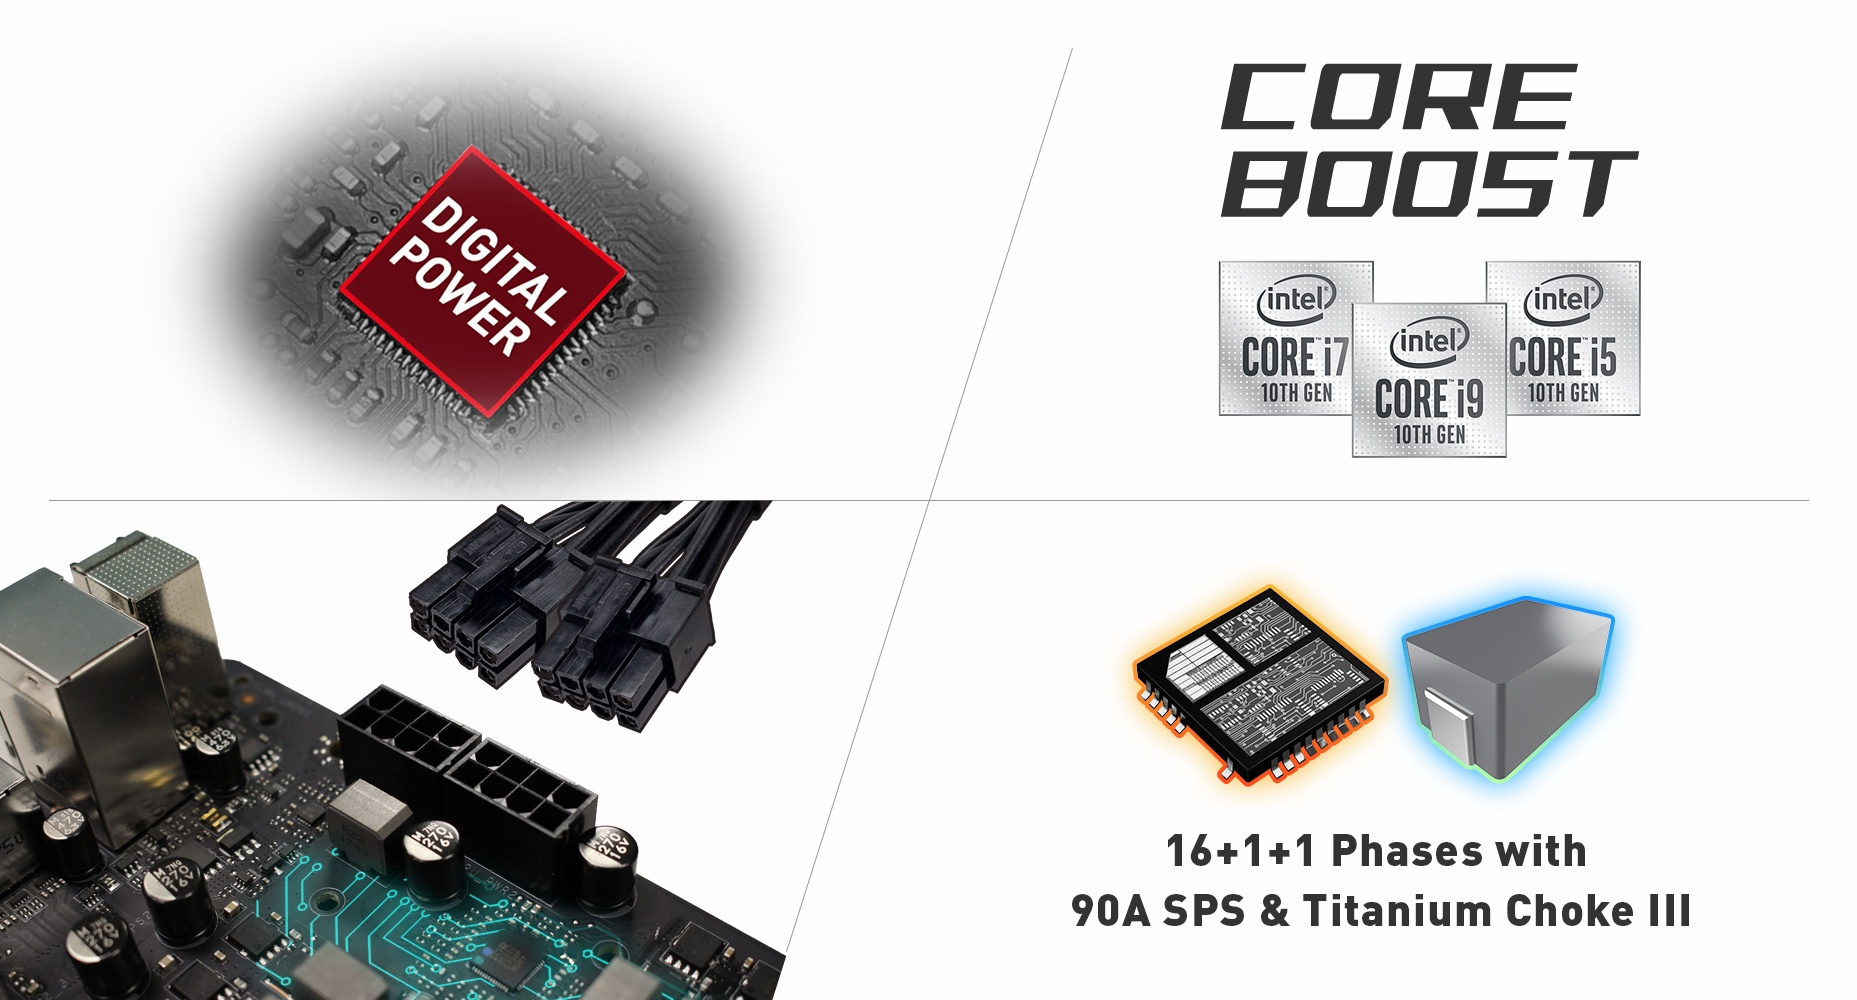 EXTREME POWER DESIGN of the motherboard